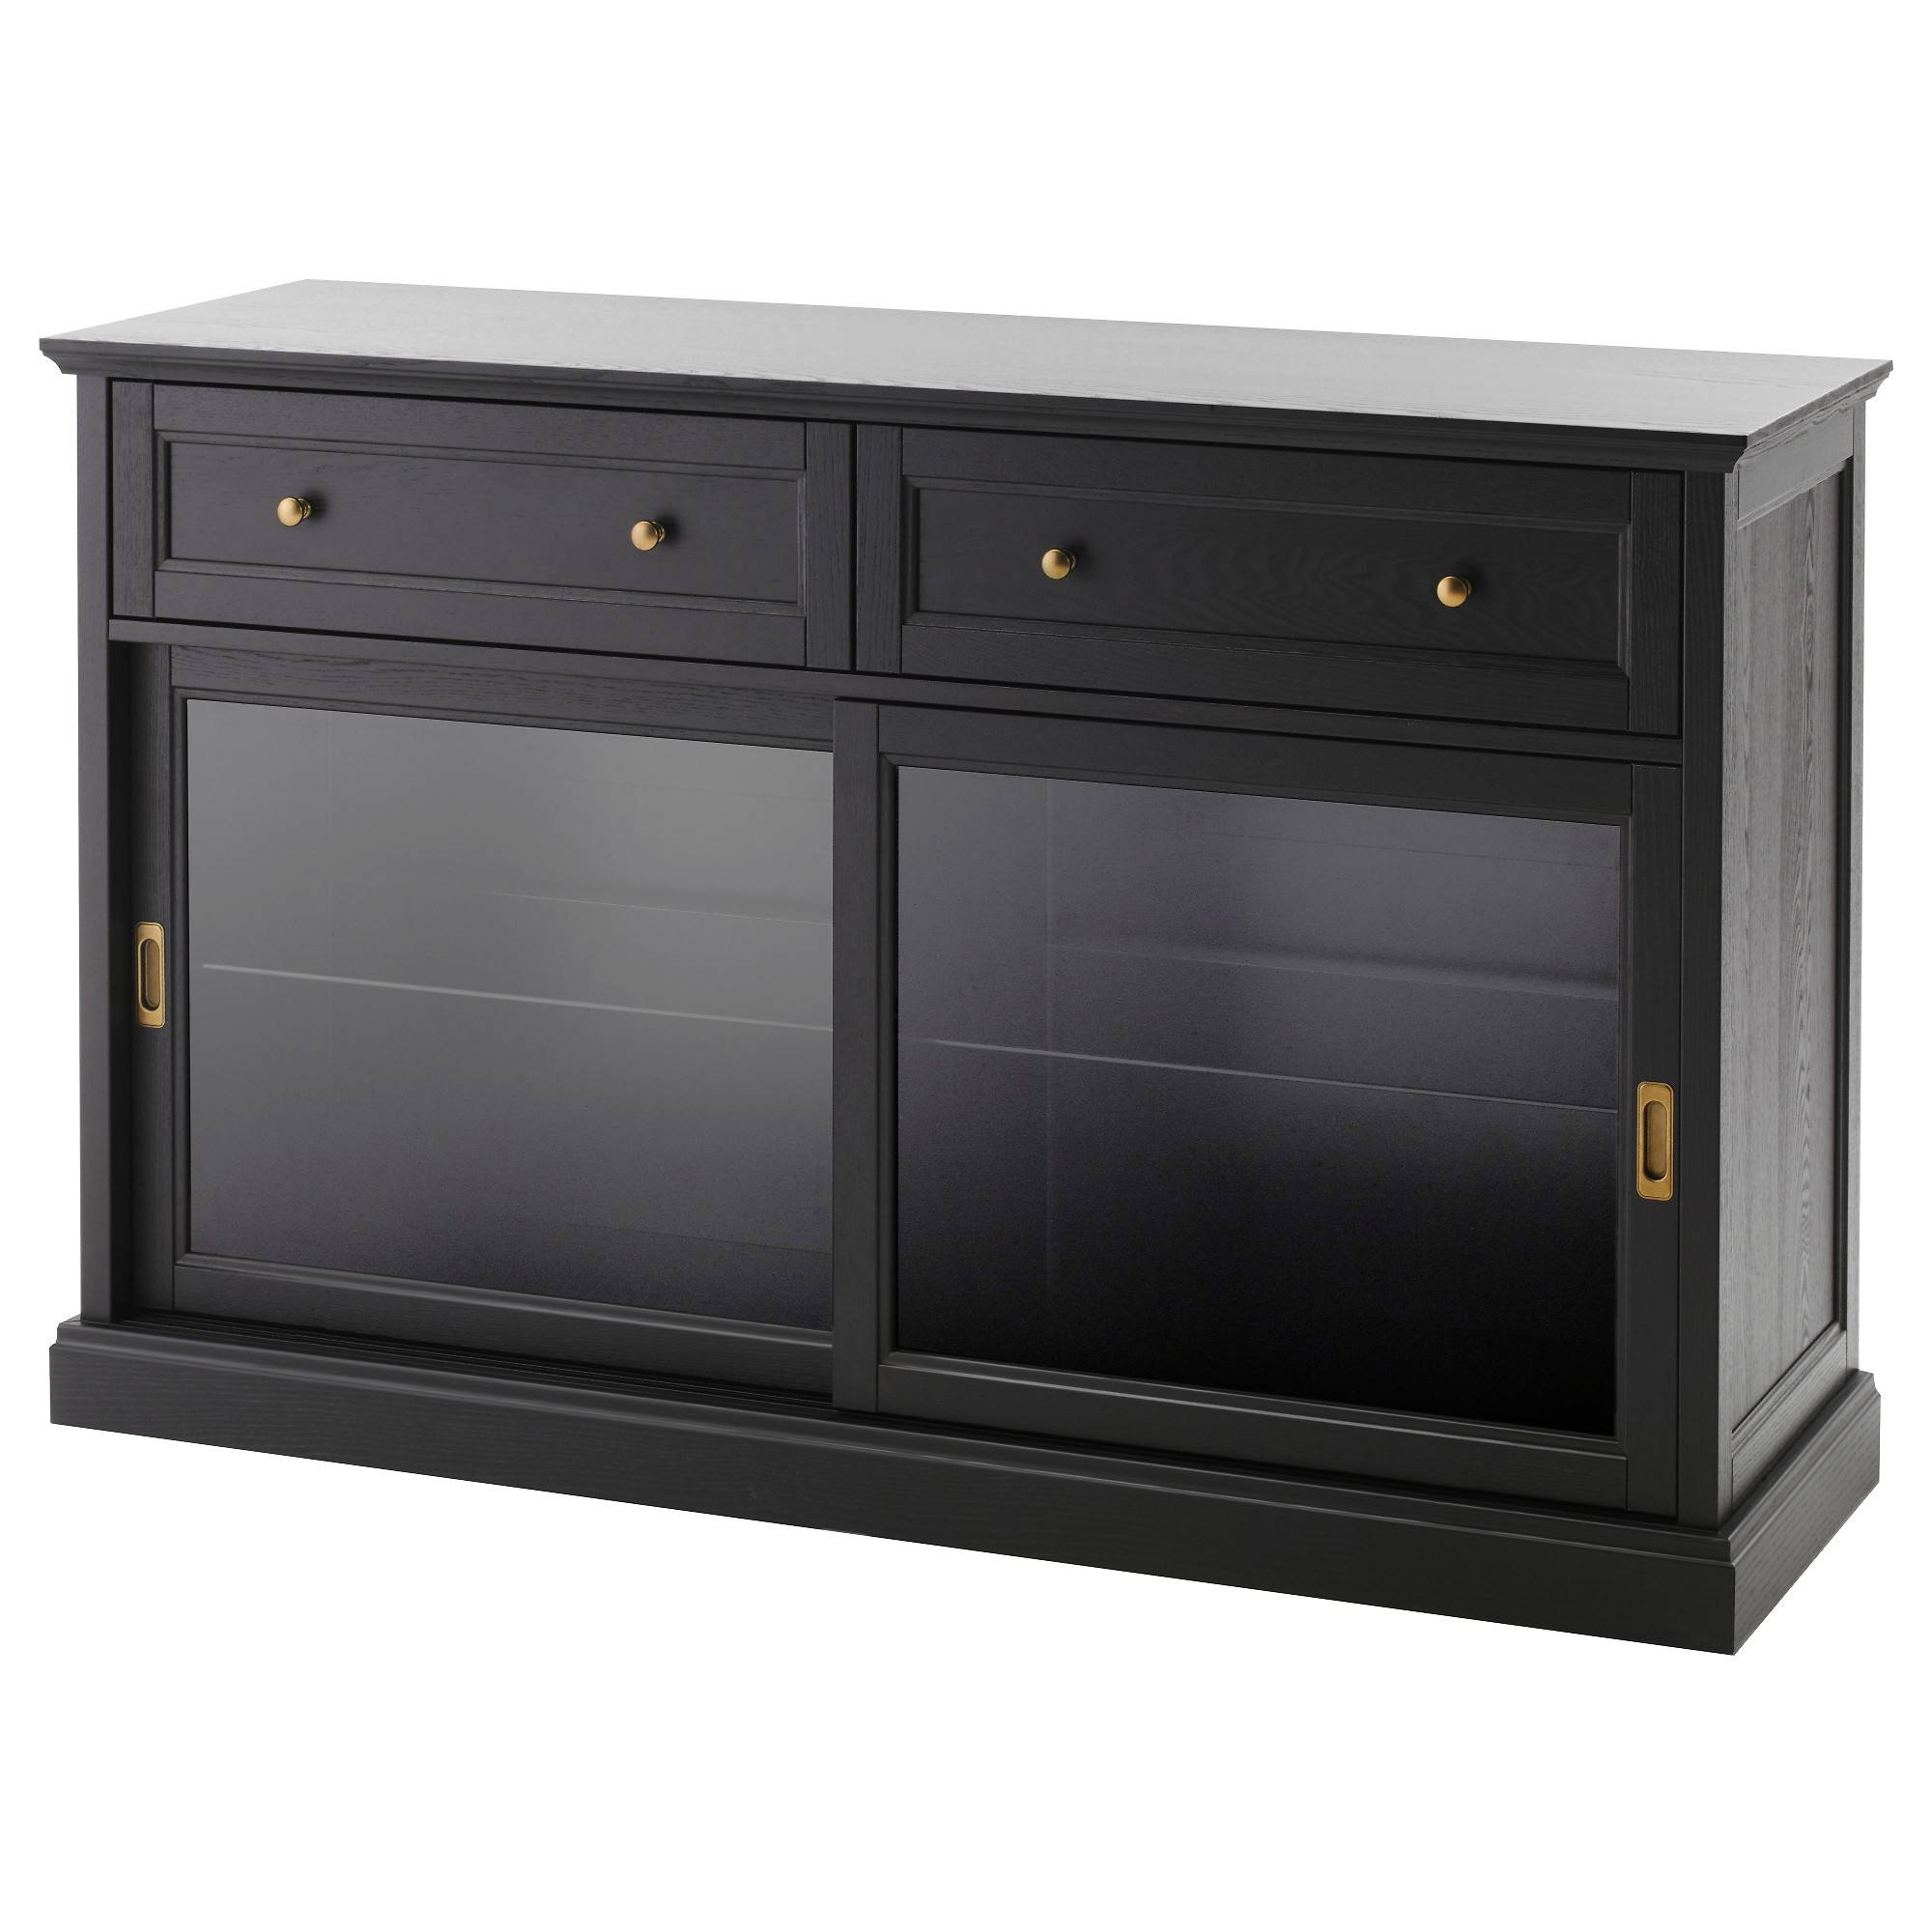 Buffet Tables & Sideboards – Ikea With Regard To Sideboards (View 4 of 20)